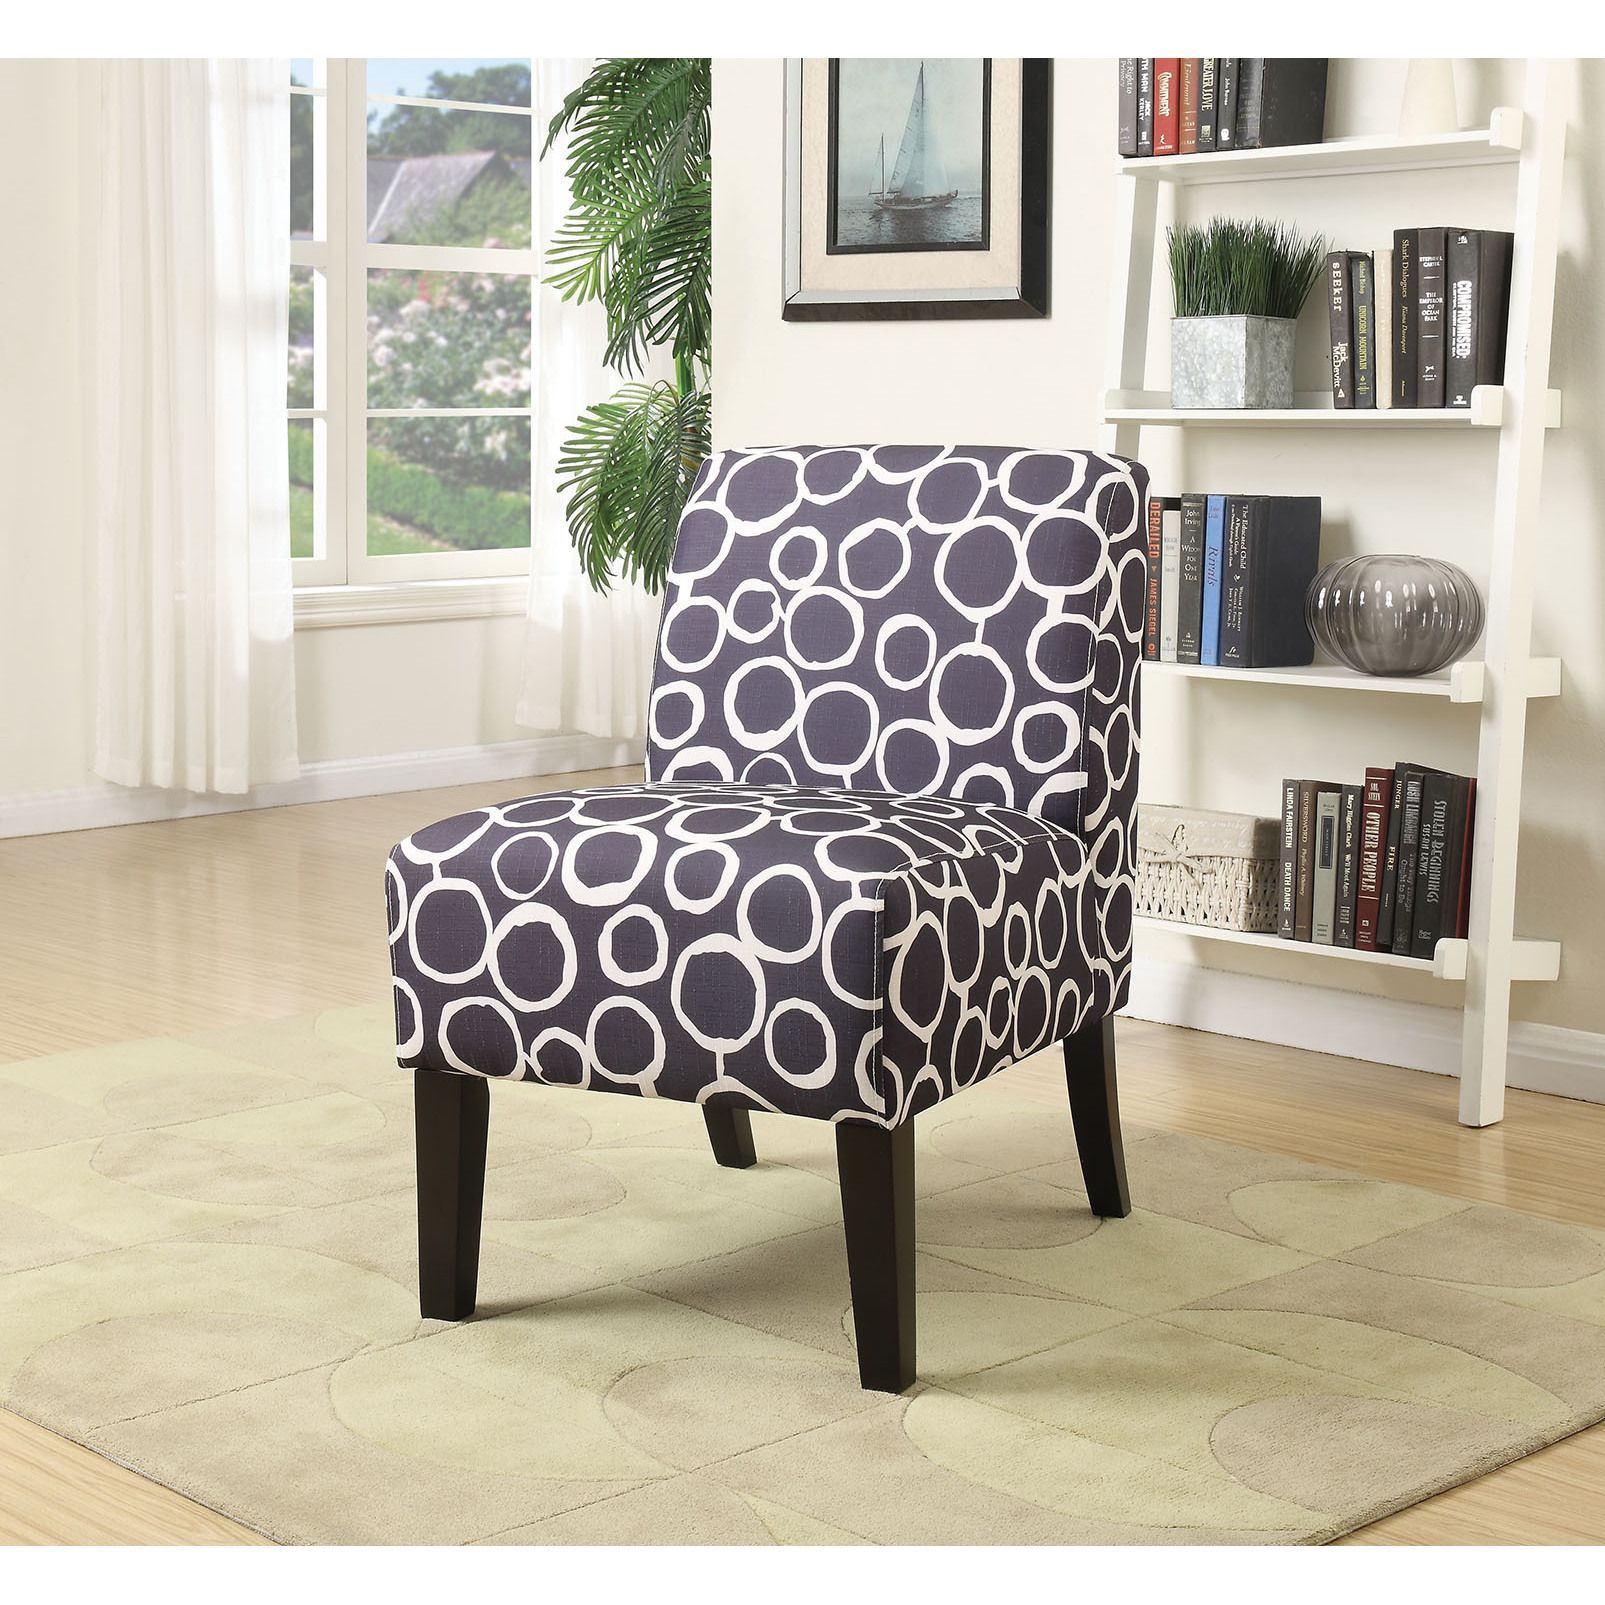 Ollano Accent Chair Pattern Fabric Pattern Fabric 23 Quot L